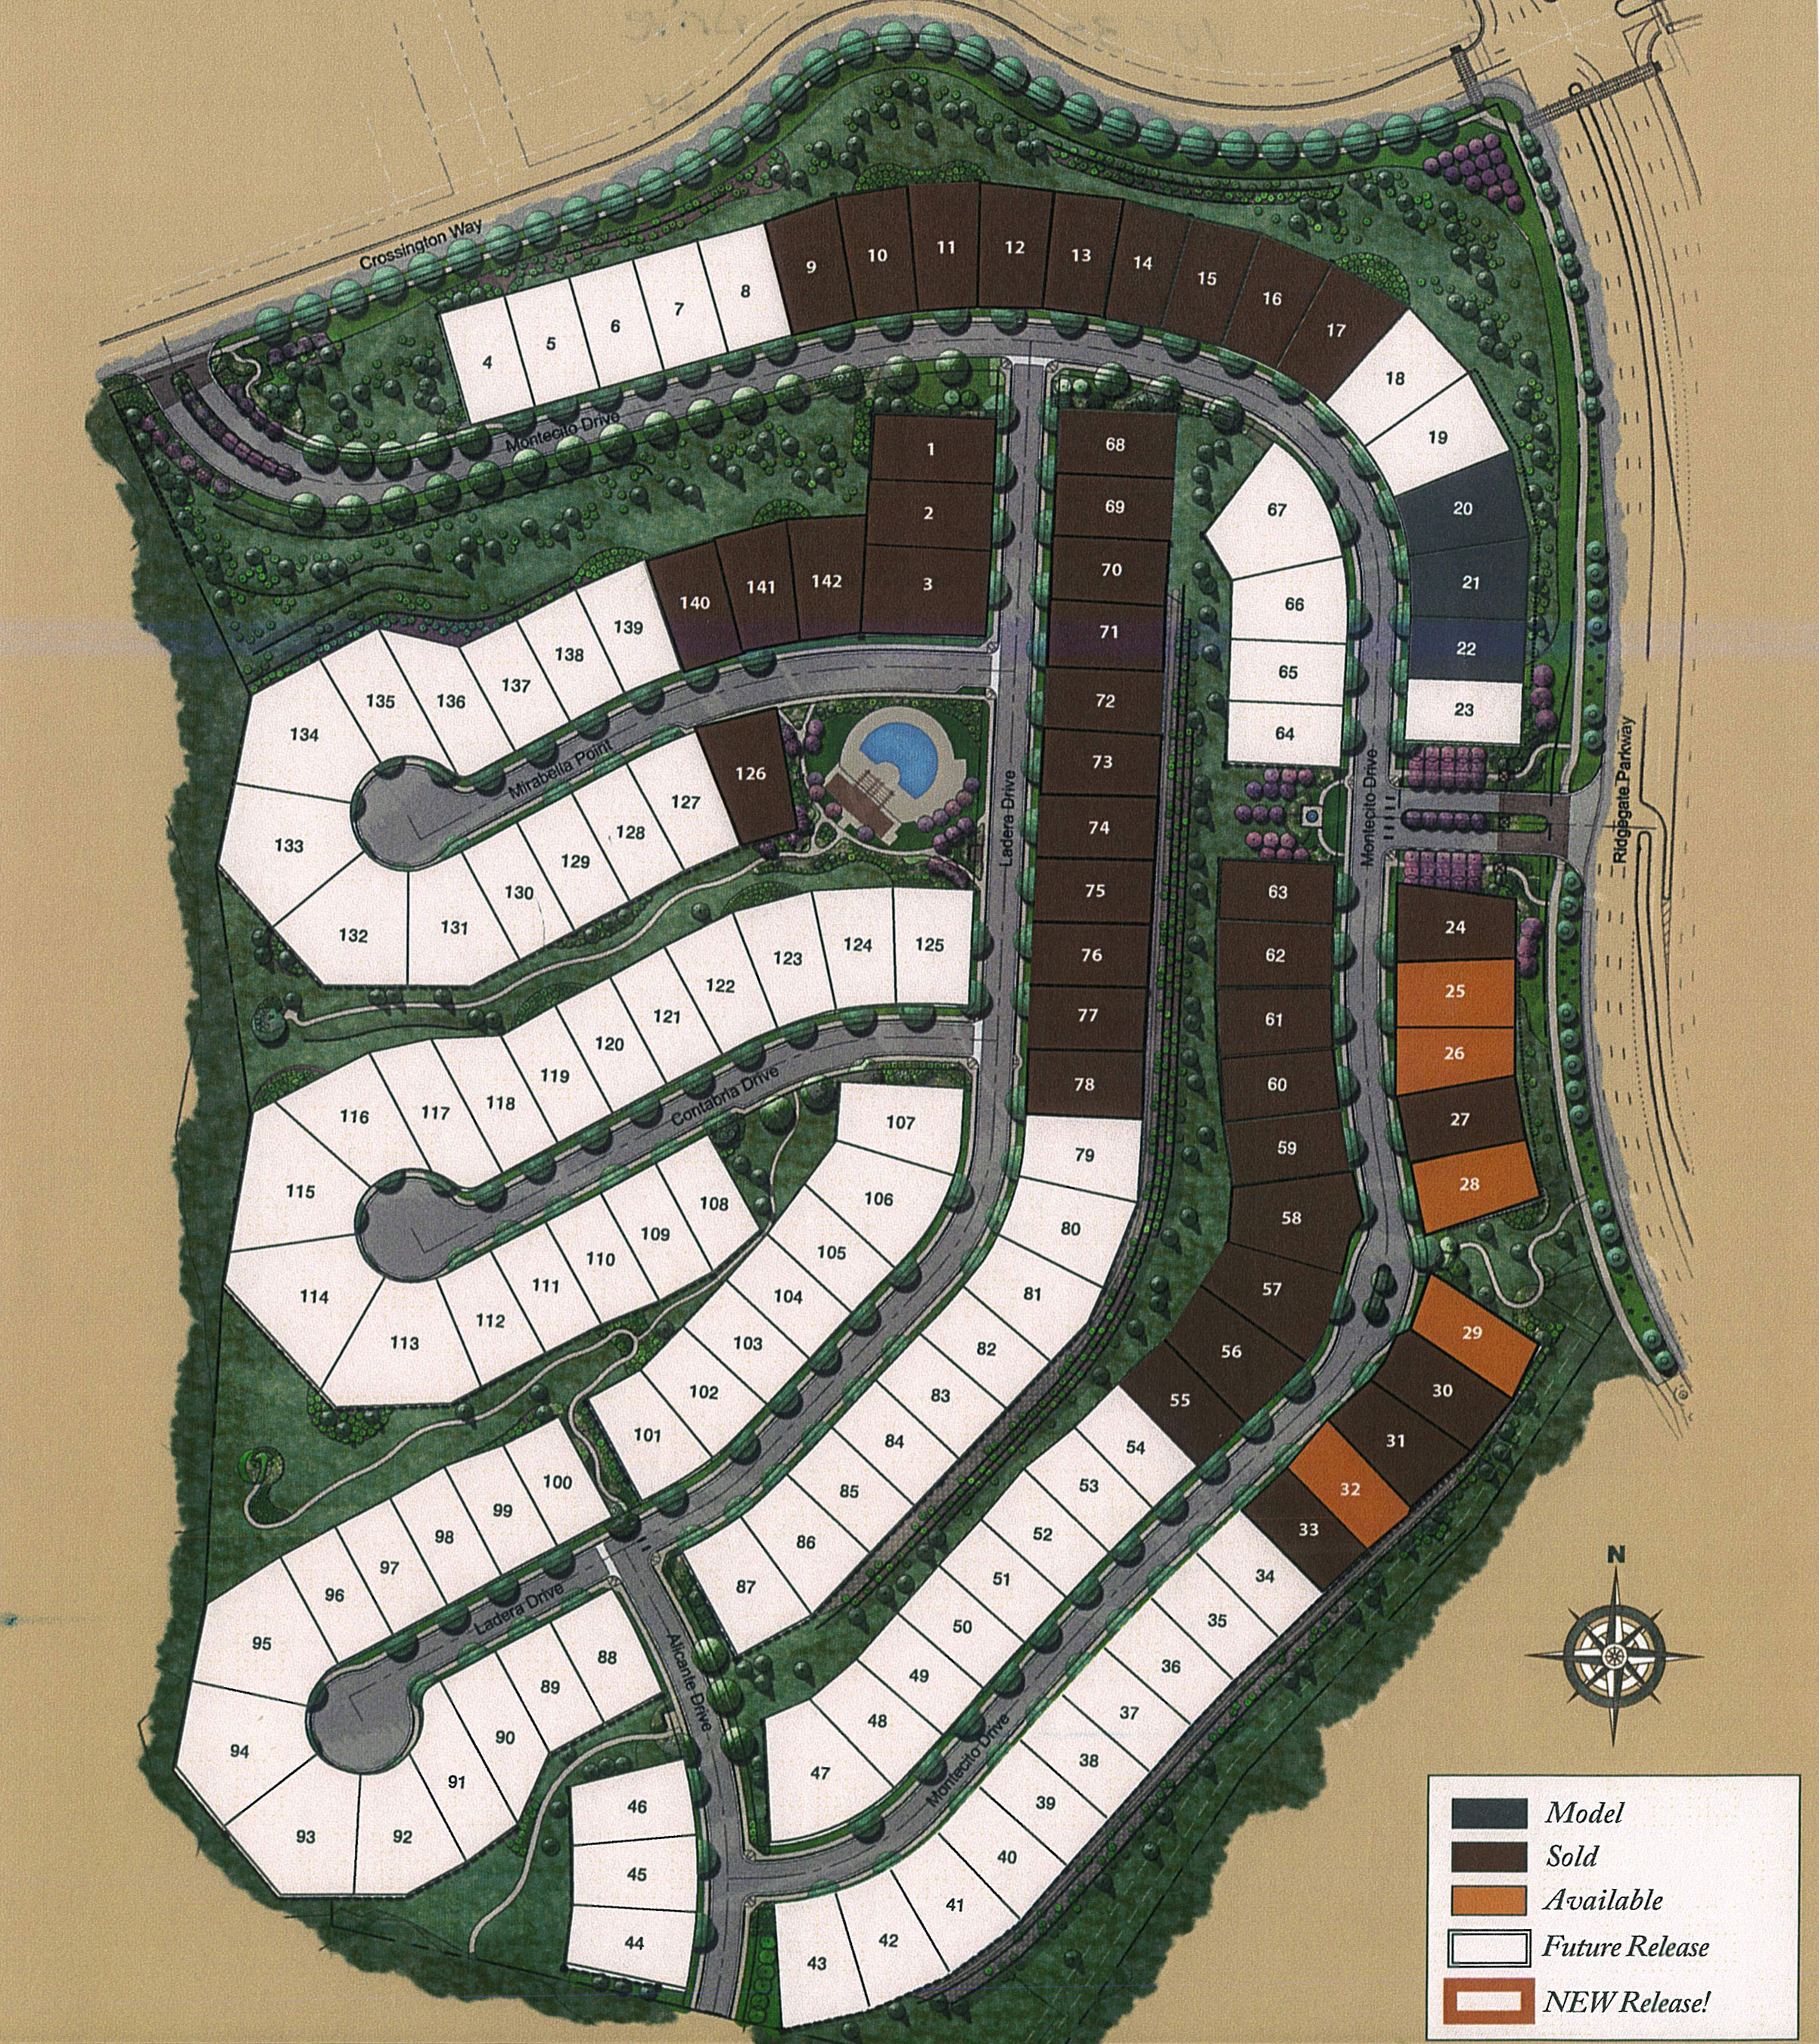 Neighborhood Map for Montecito at RidgeGate in Lone Tree, CO